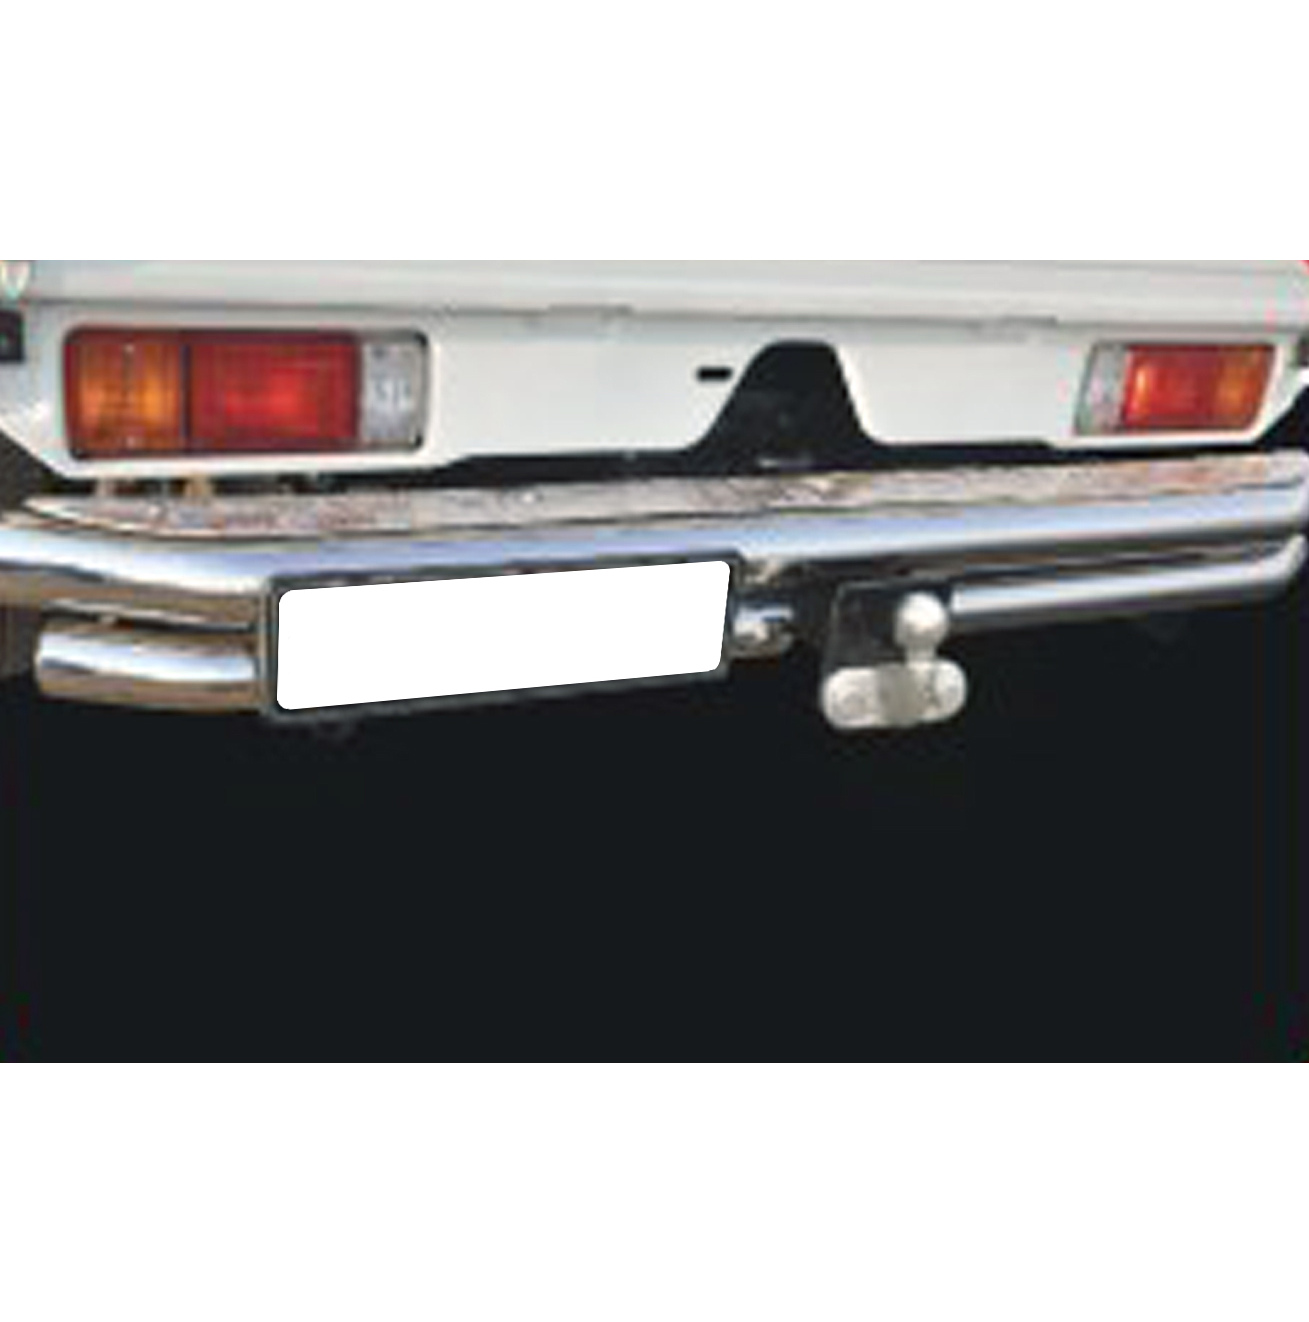 Toyota Land Cruiser 70 Series Rear Step With Towbar Stainless Steel